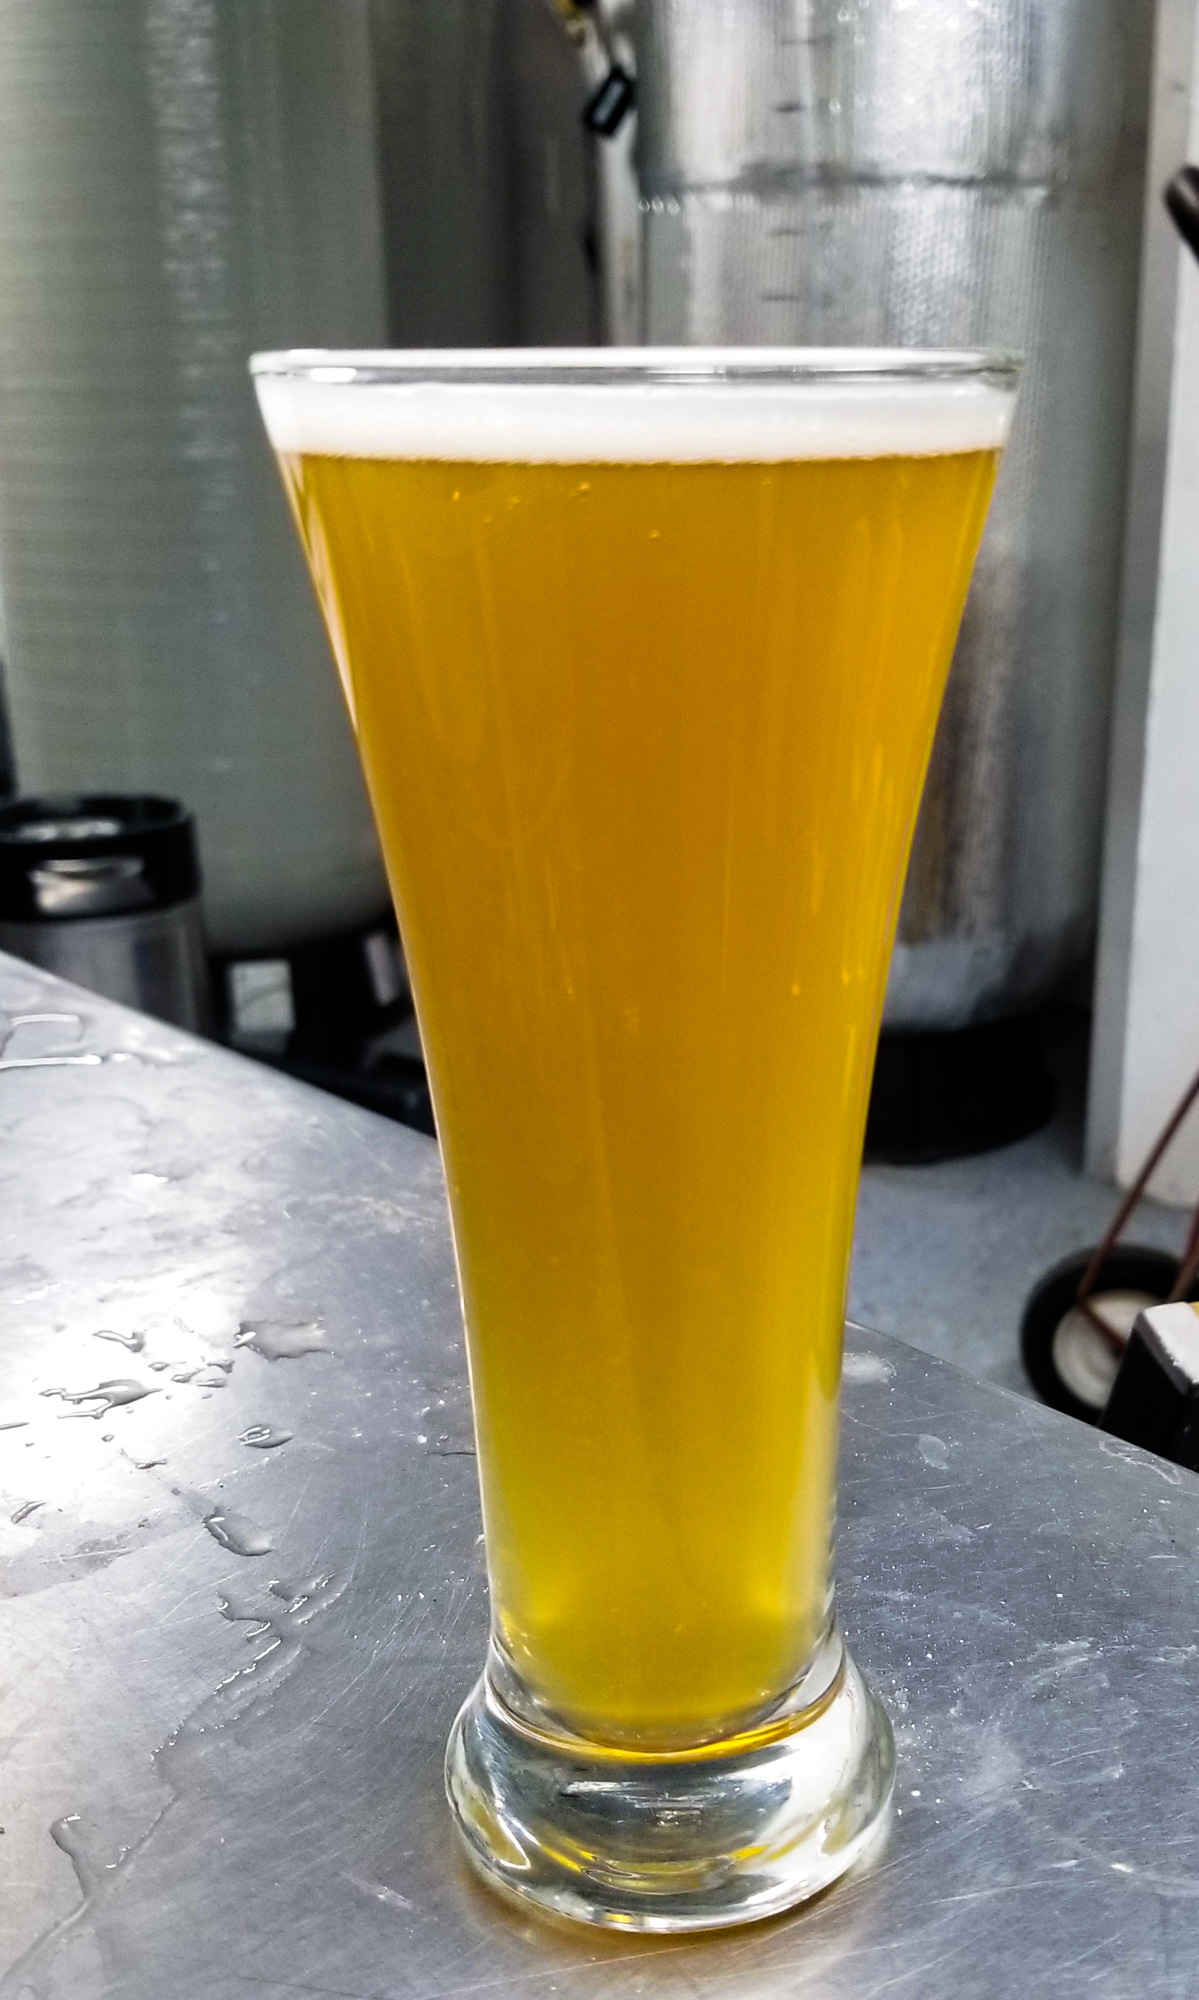 Initiative Cream Ale from Chaotic Good Brewing Company • Photo by Scott Stroh